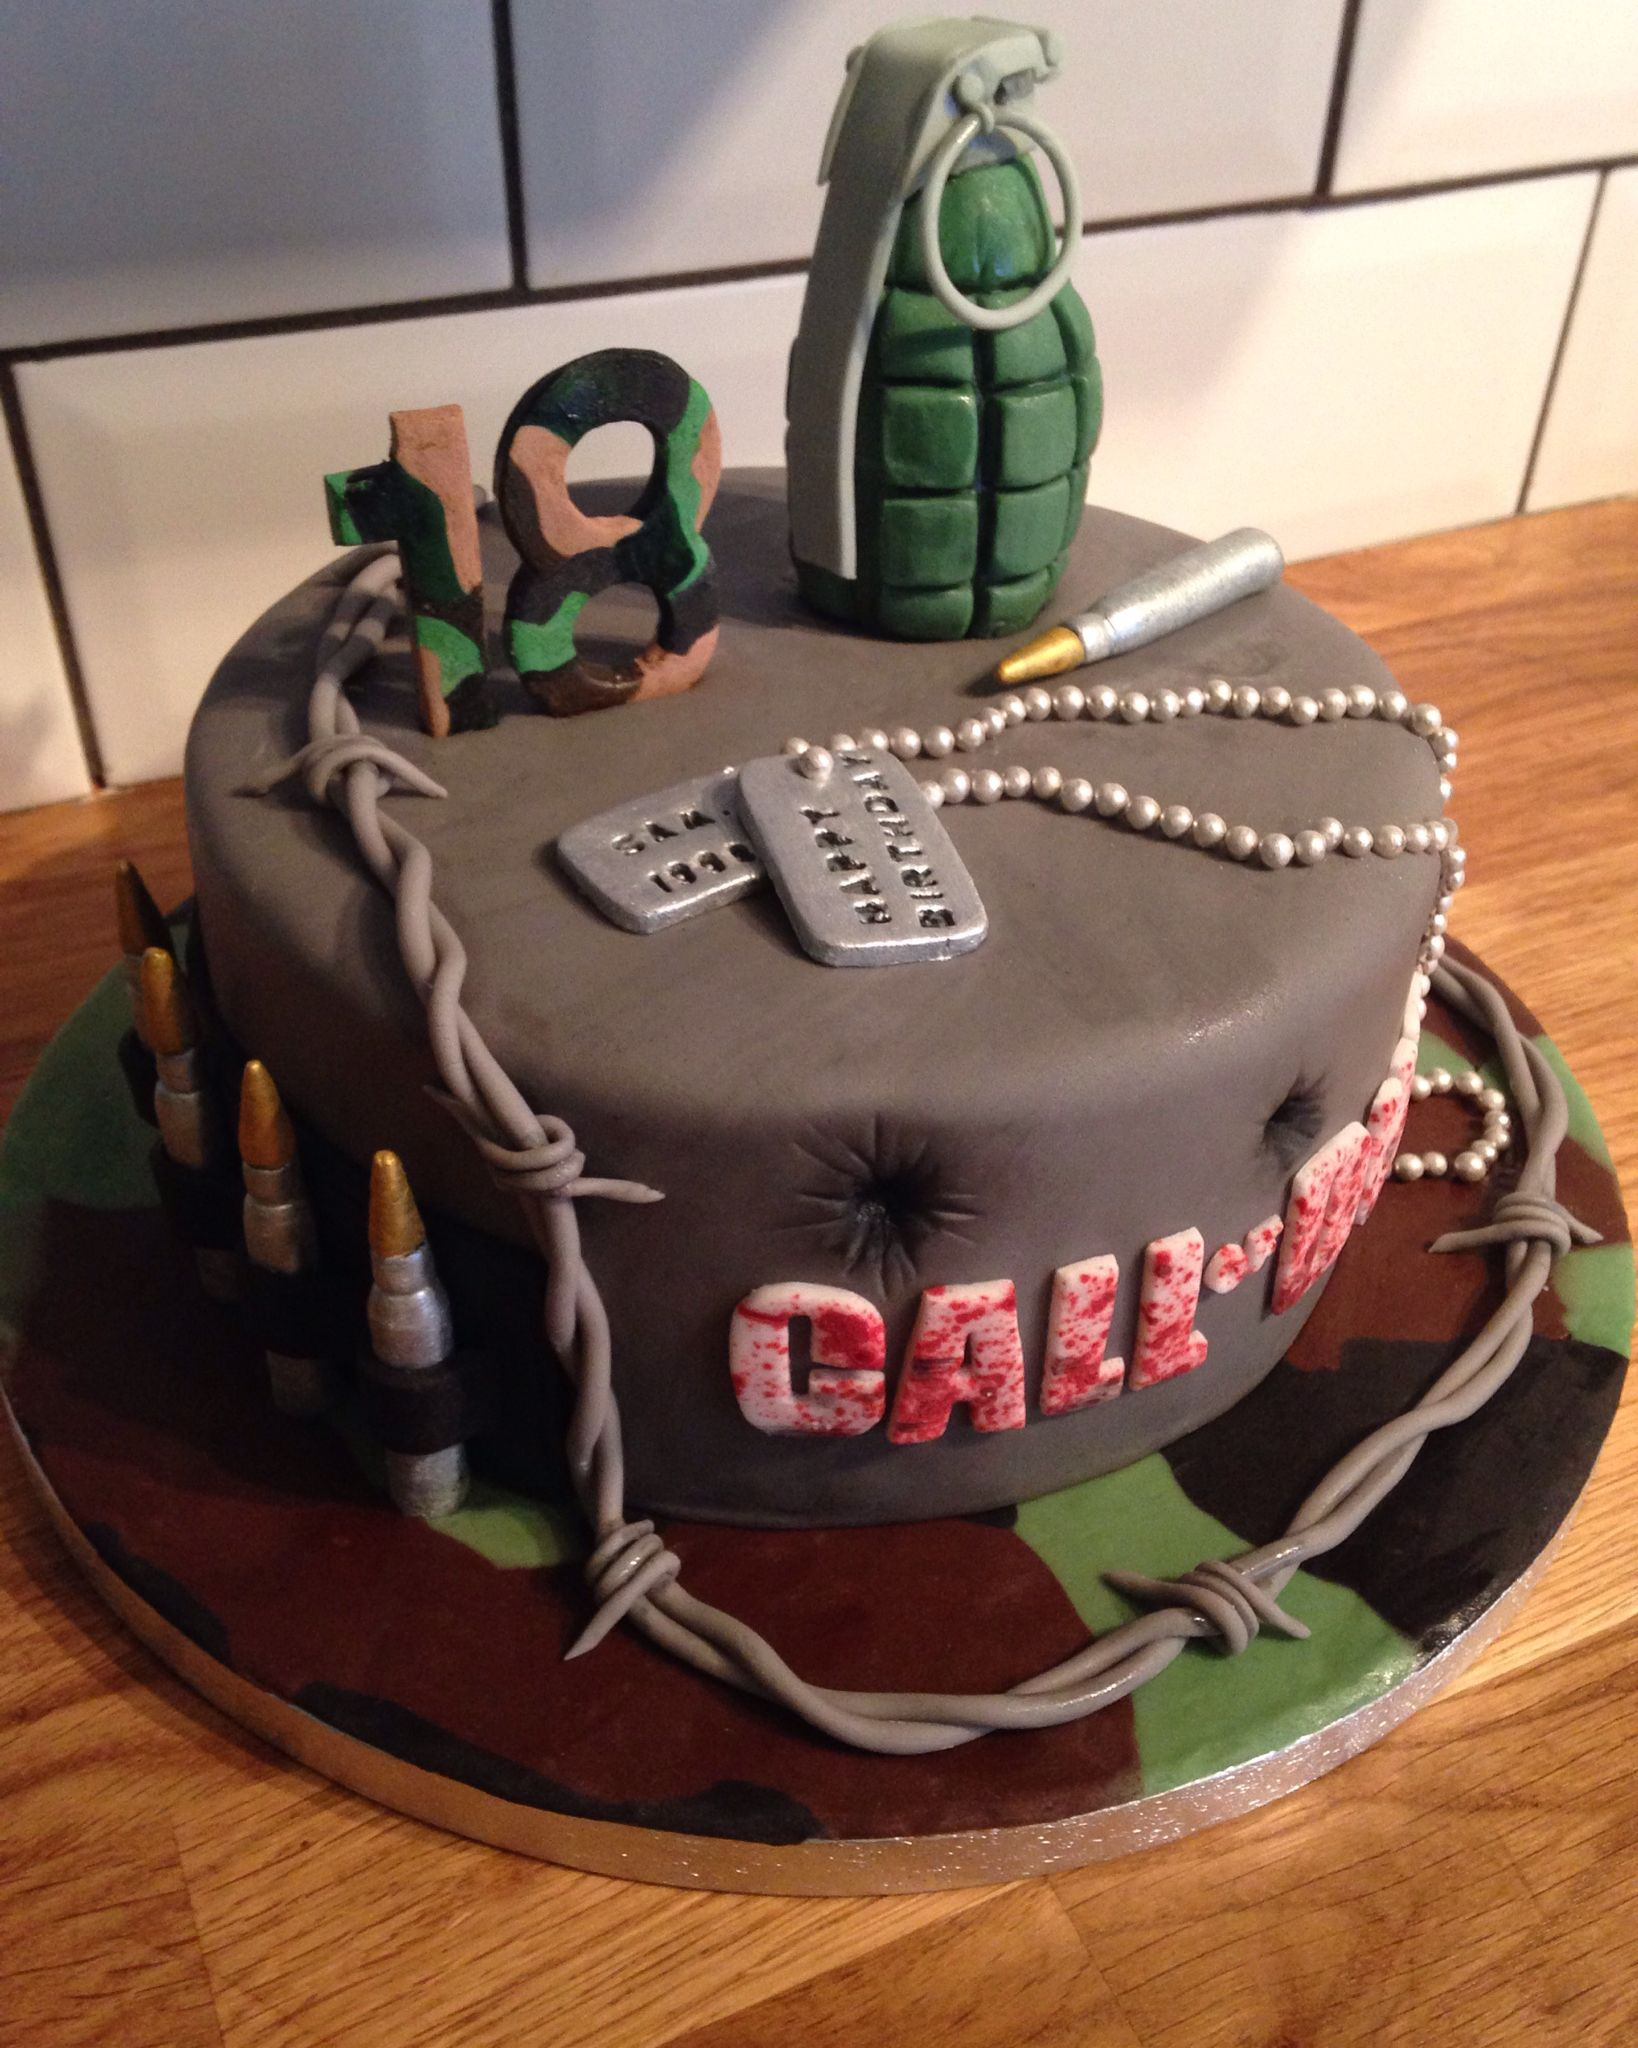 Call of duty cake Army birthday cakes, Call of duty cakes